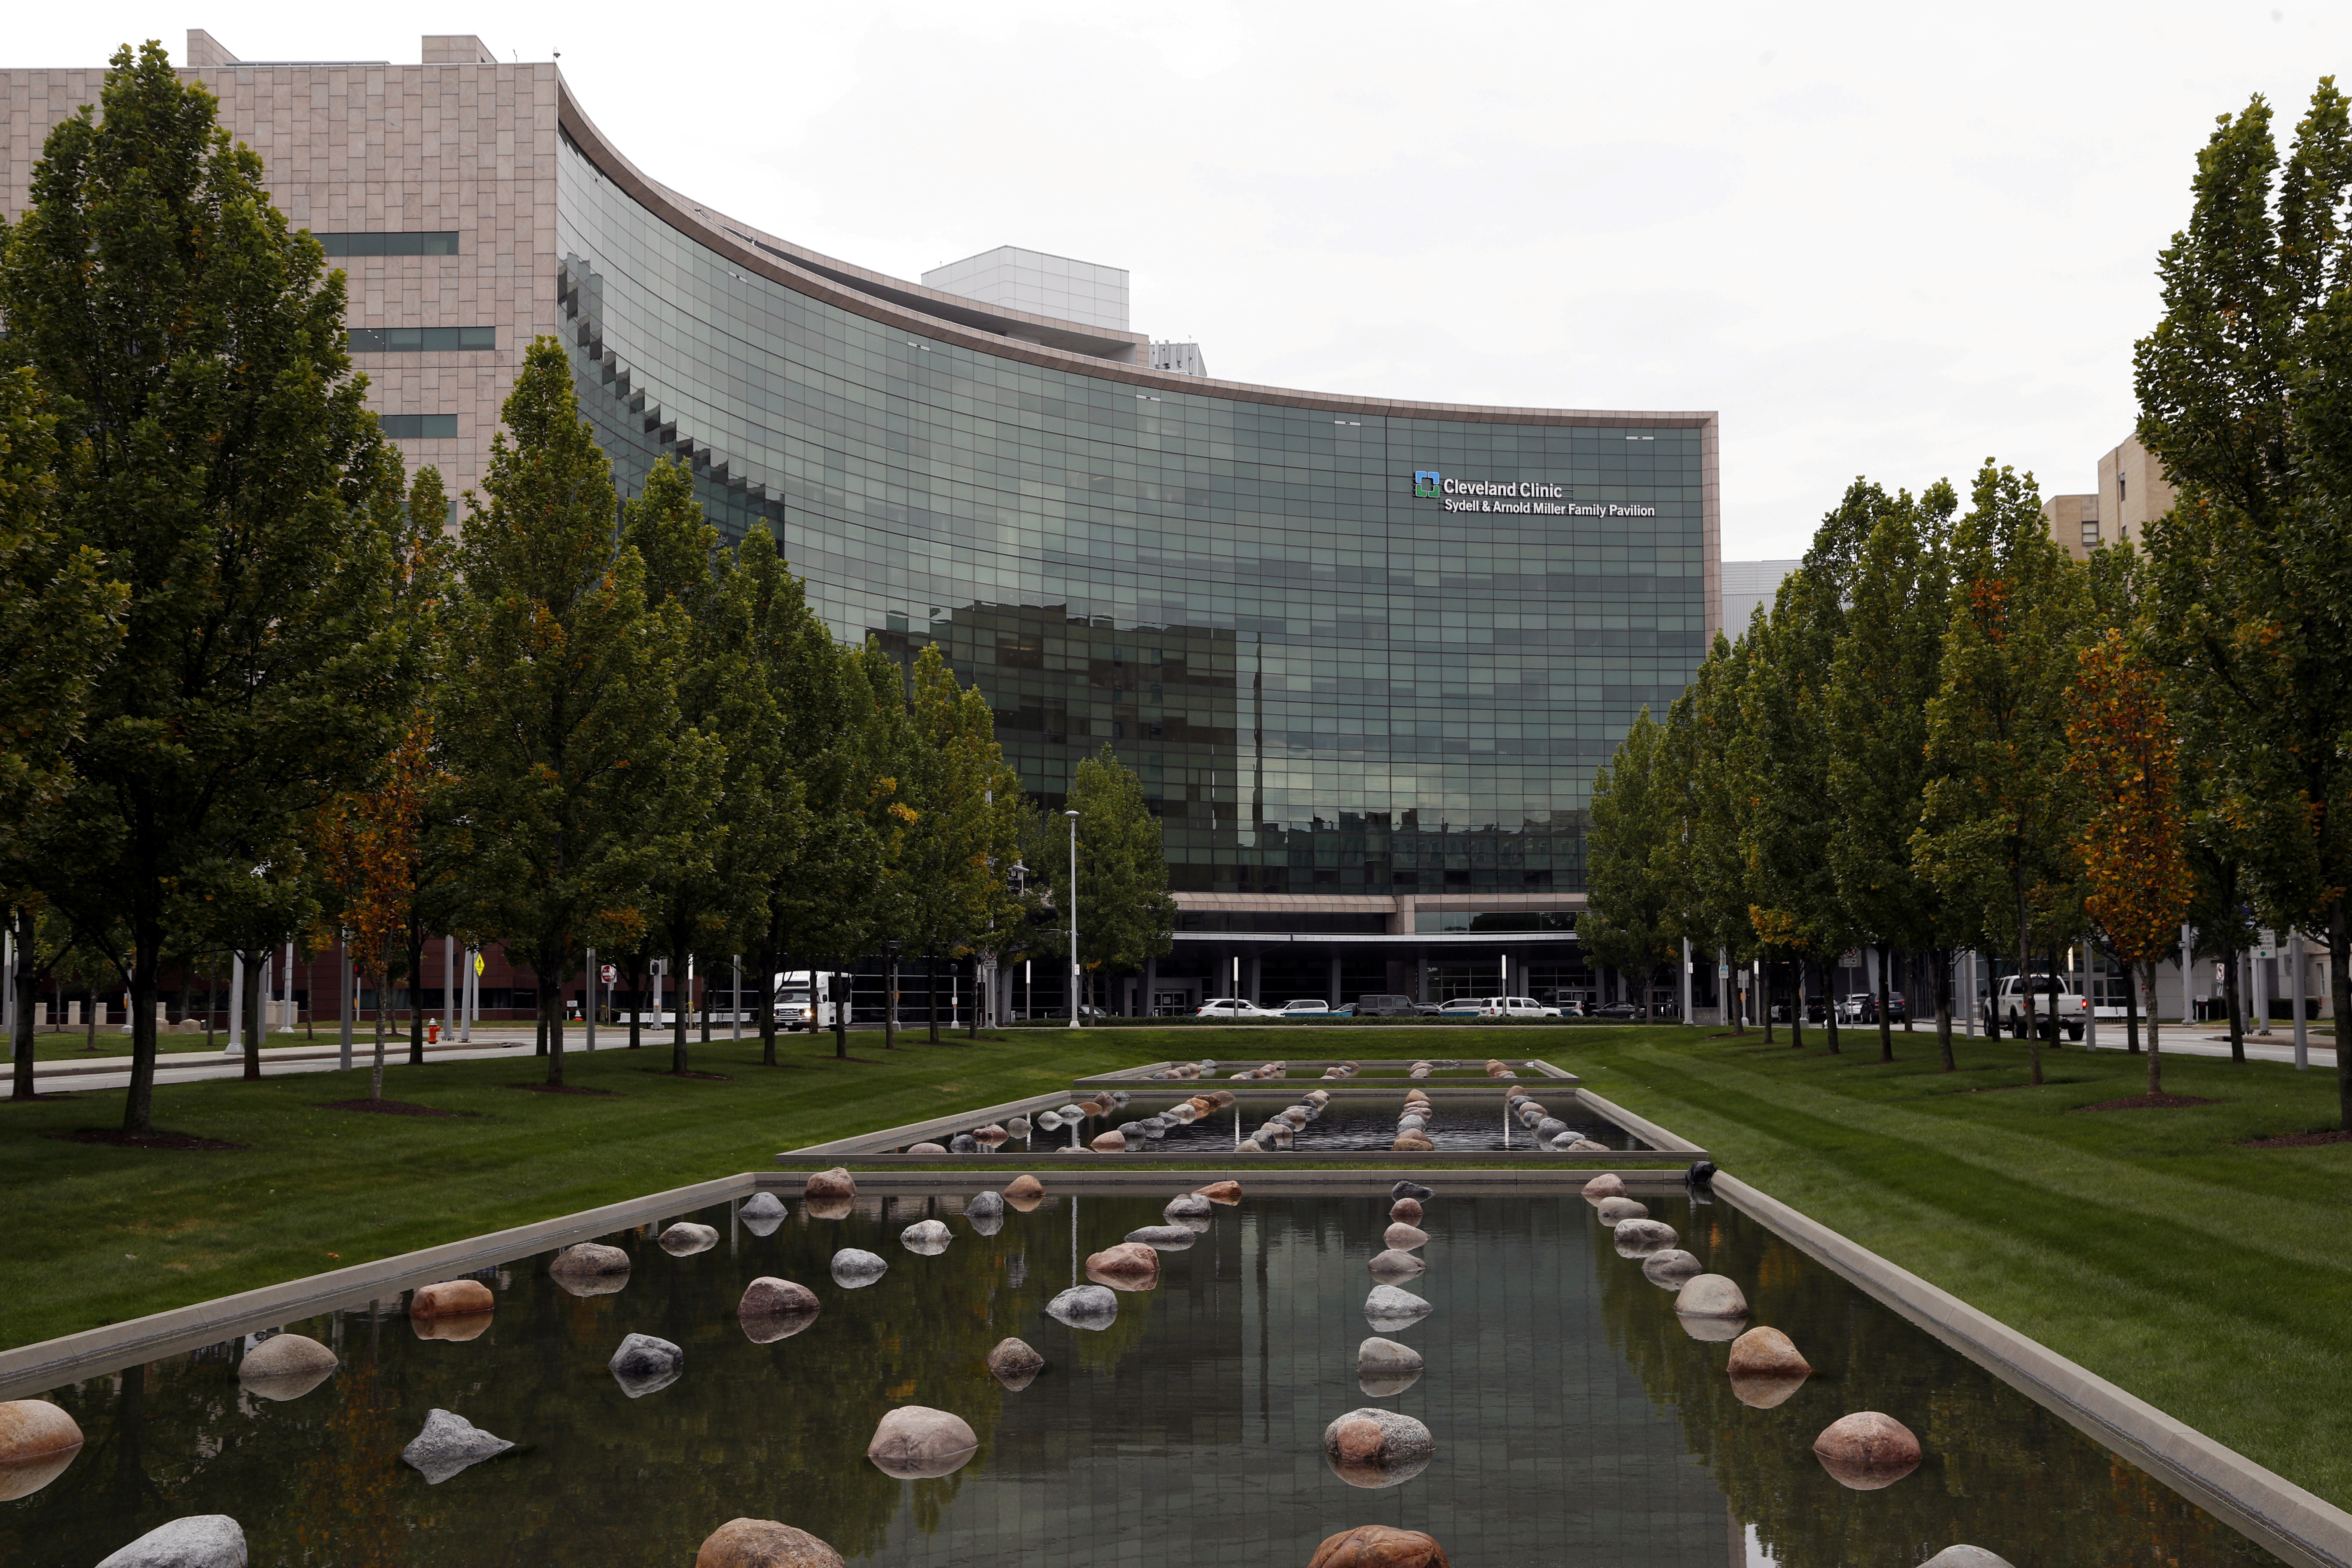 The Cleveland Clinic medical center is seen in Cleveland, Ohio, U.S. October 4, 2020.  REUTERS/Aaron Josefczyk/File Photo